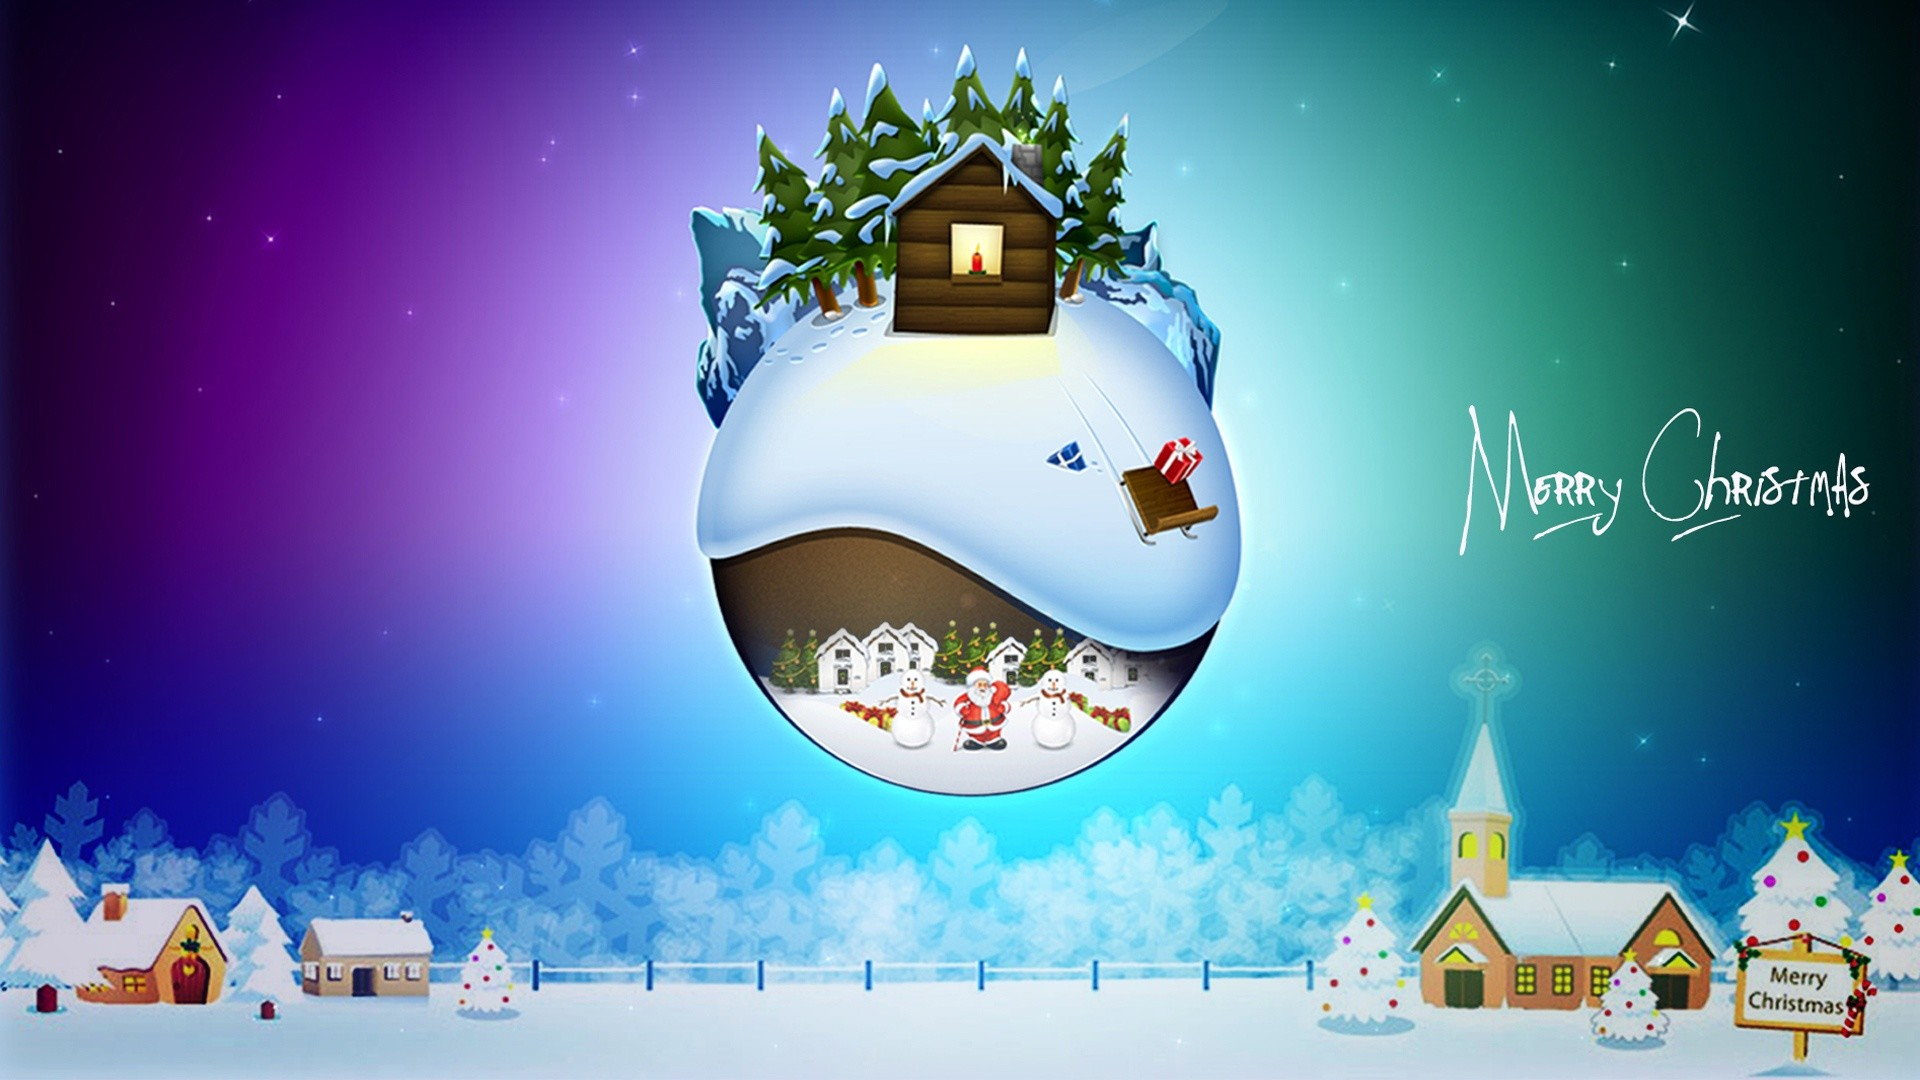 Download Merry Christmas wallpaper HD. Free download merry christmas  cartoons.